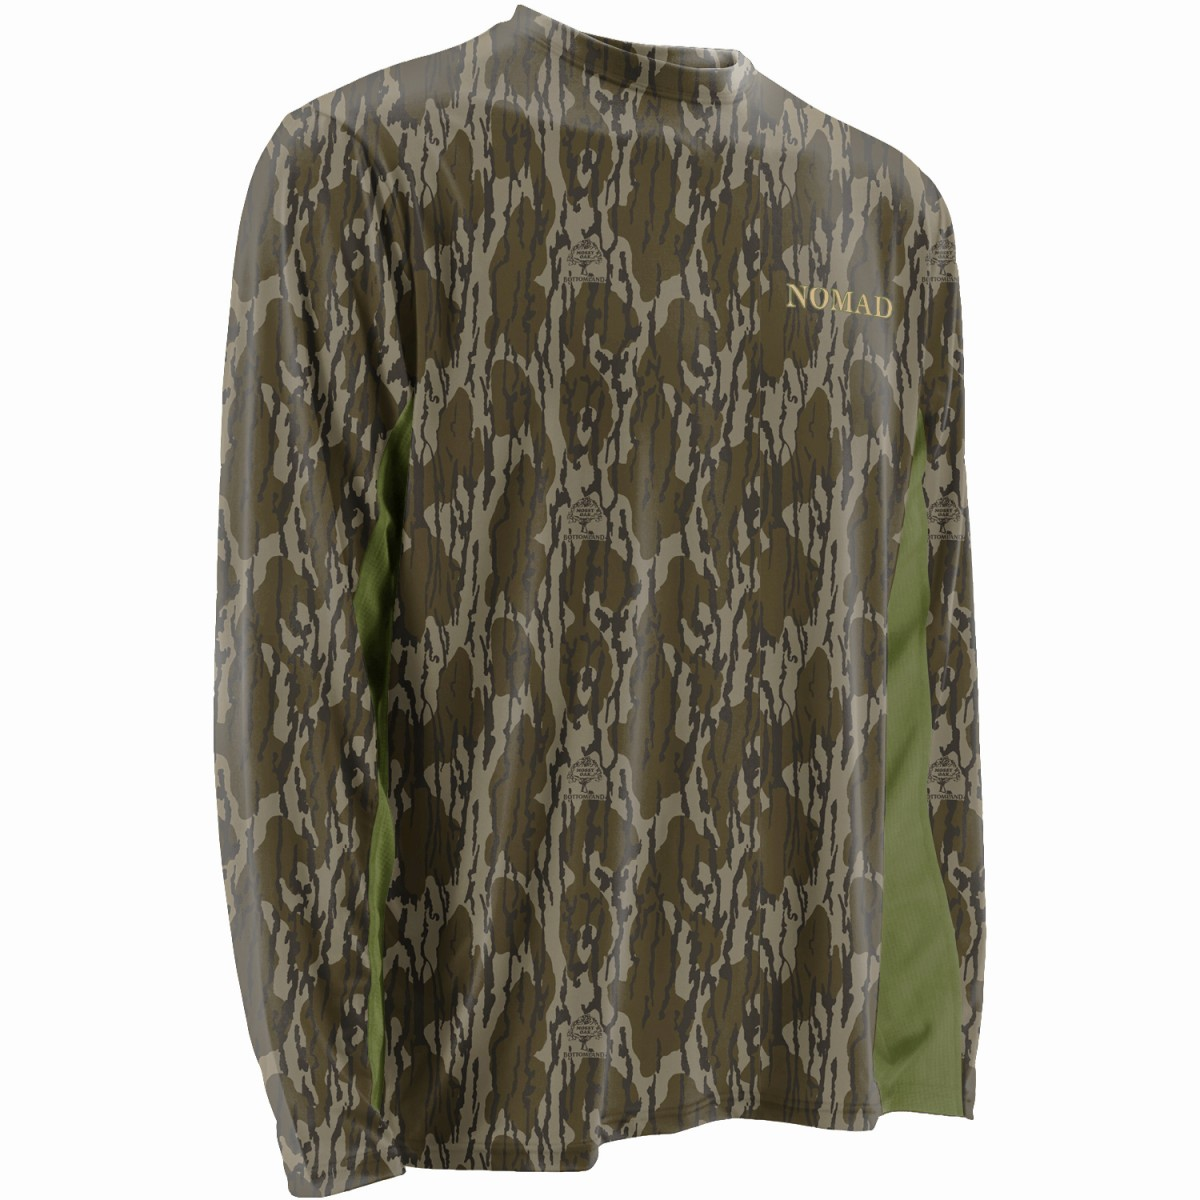 a2e4885d33c49 Nomad Long Sleeve Cooling Tee